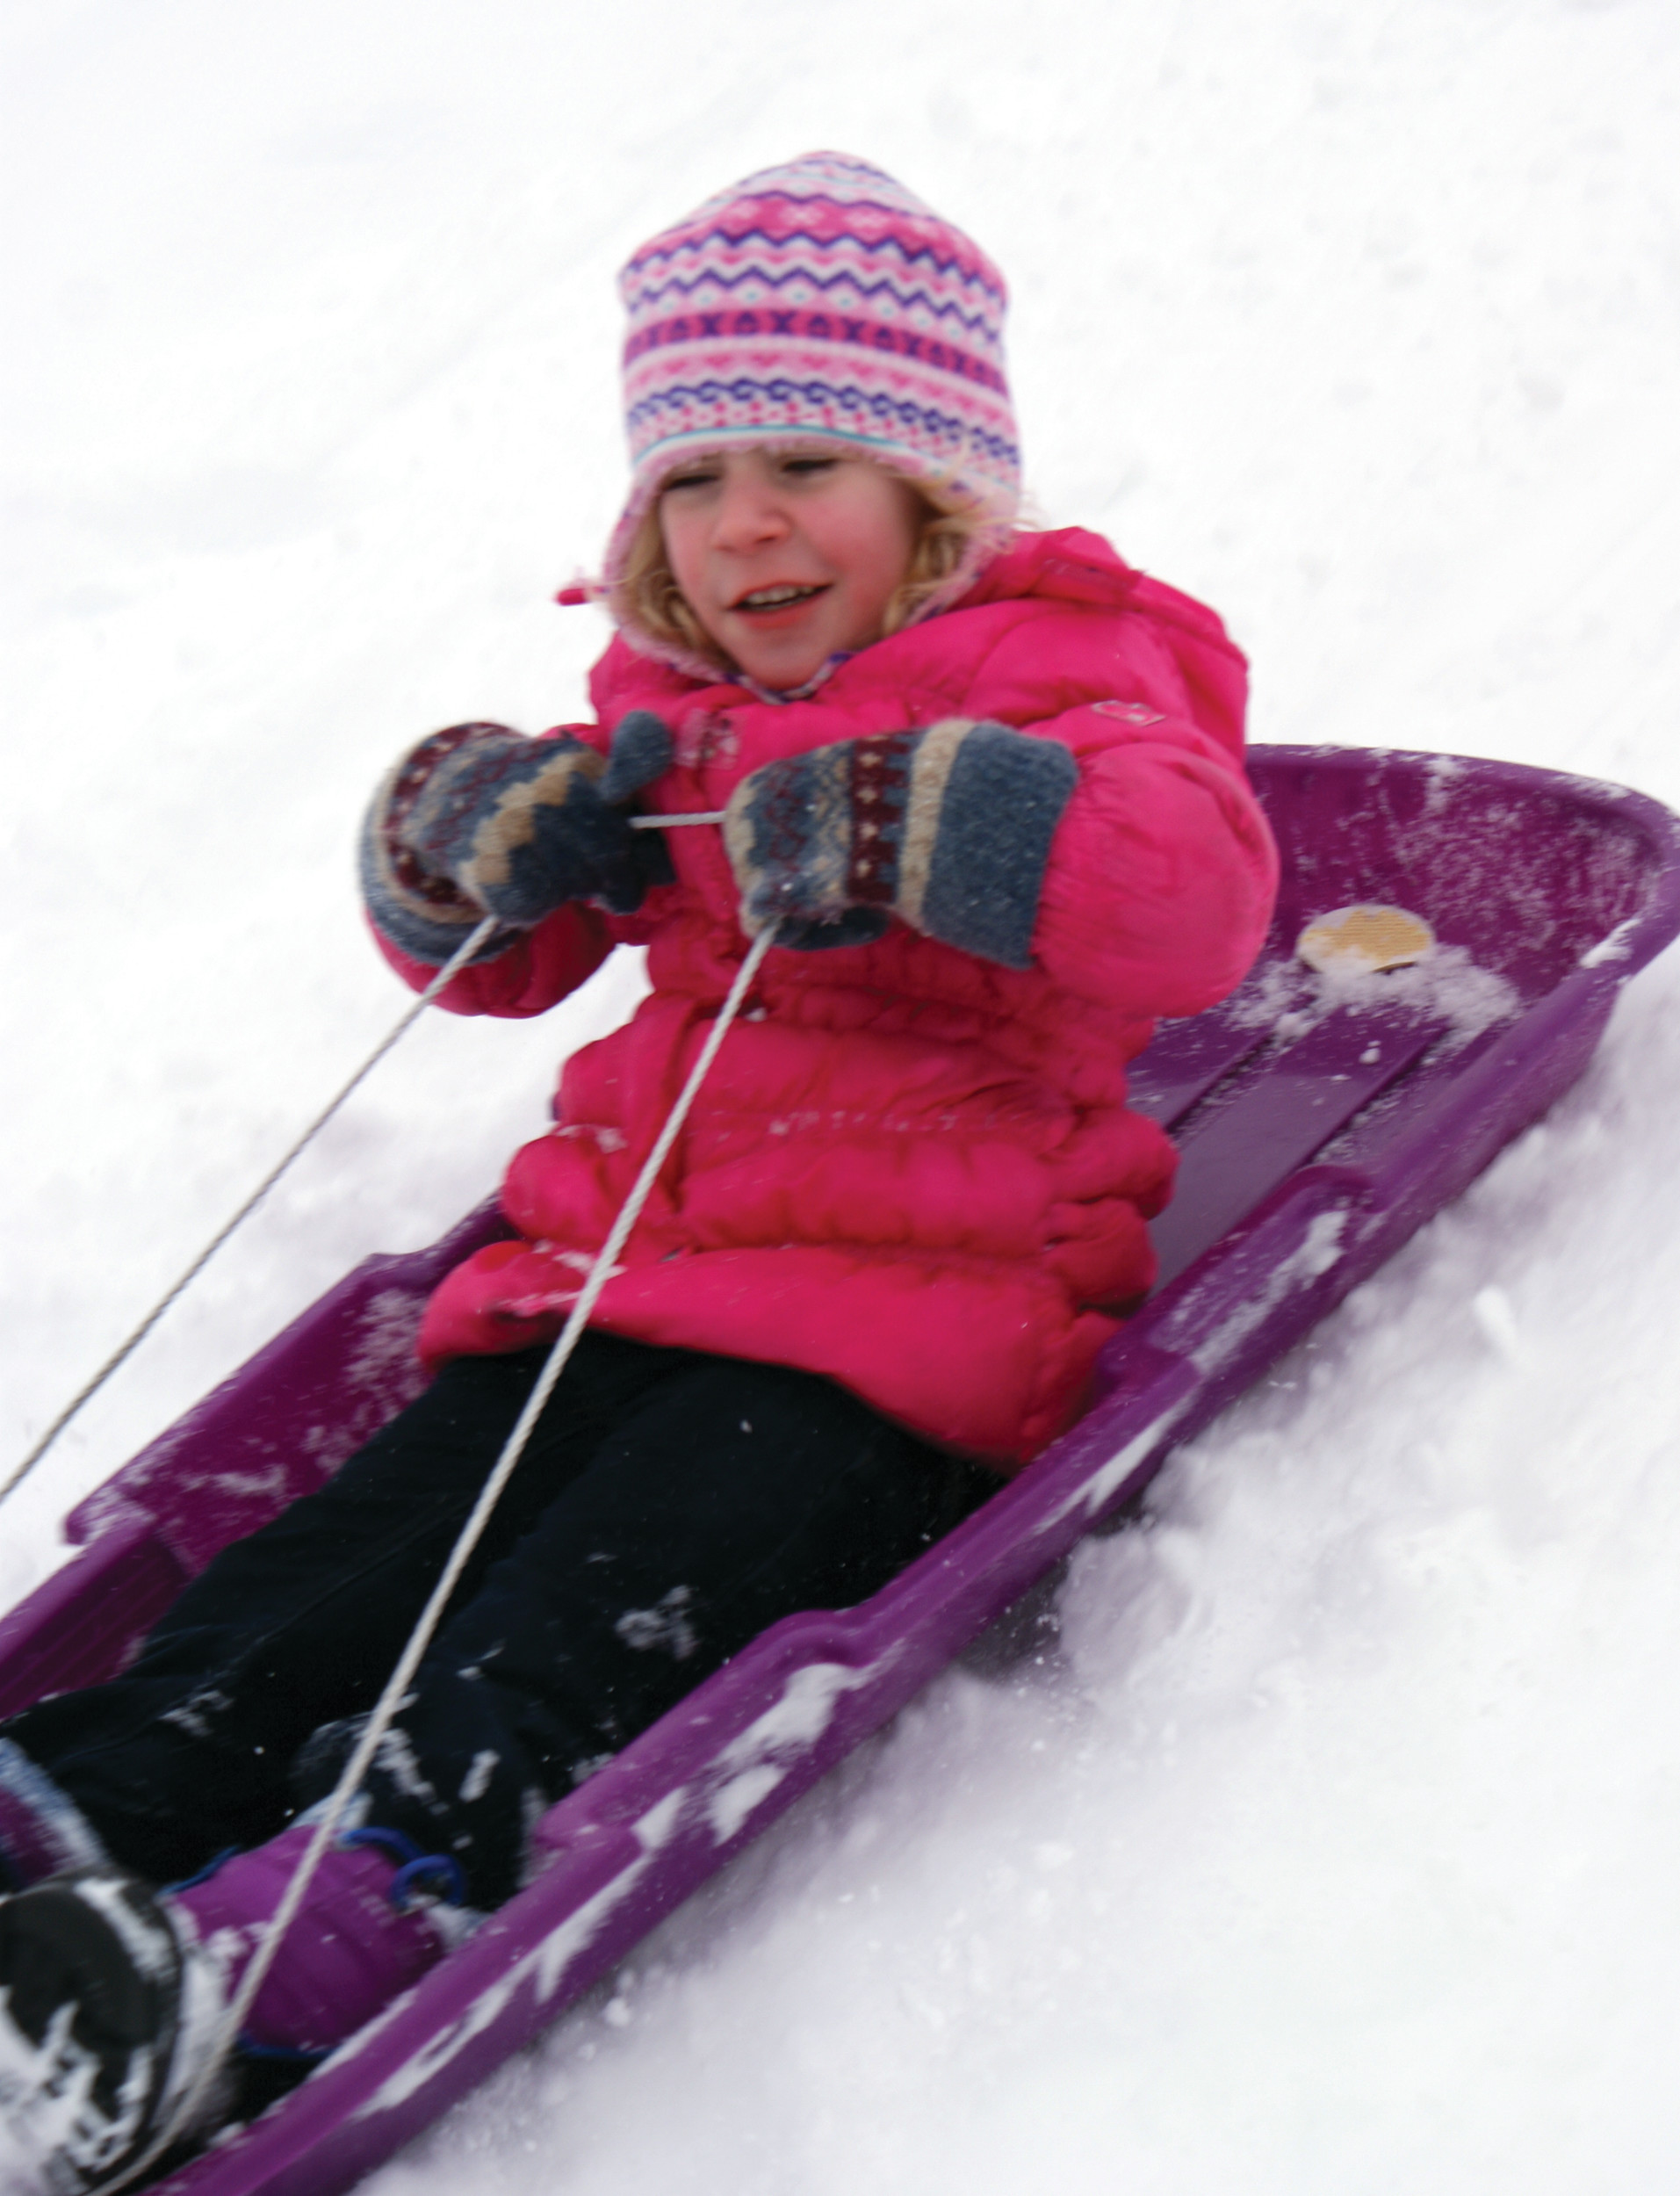 IN ACTION: Enjoying her day of sledding at Aqueduct Field was Victoria Olivieri, age 4, last Saturday.